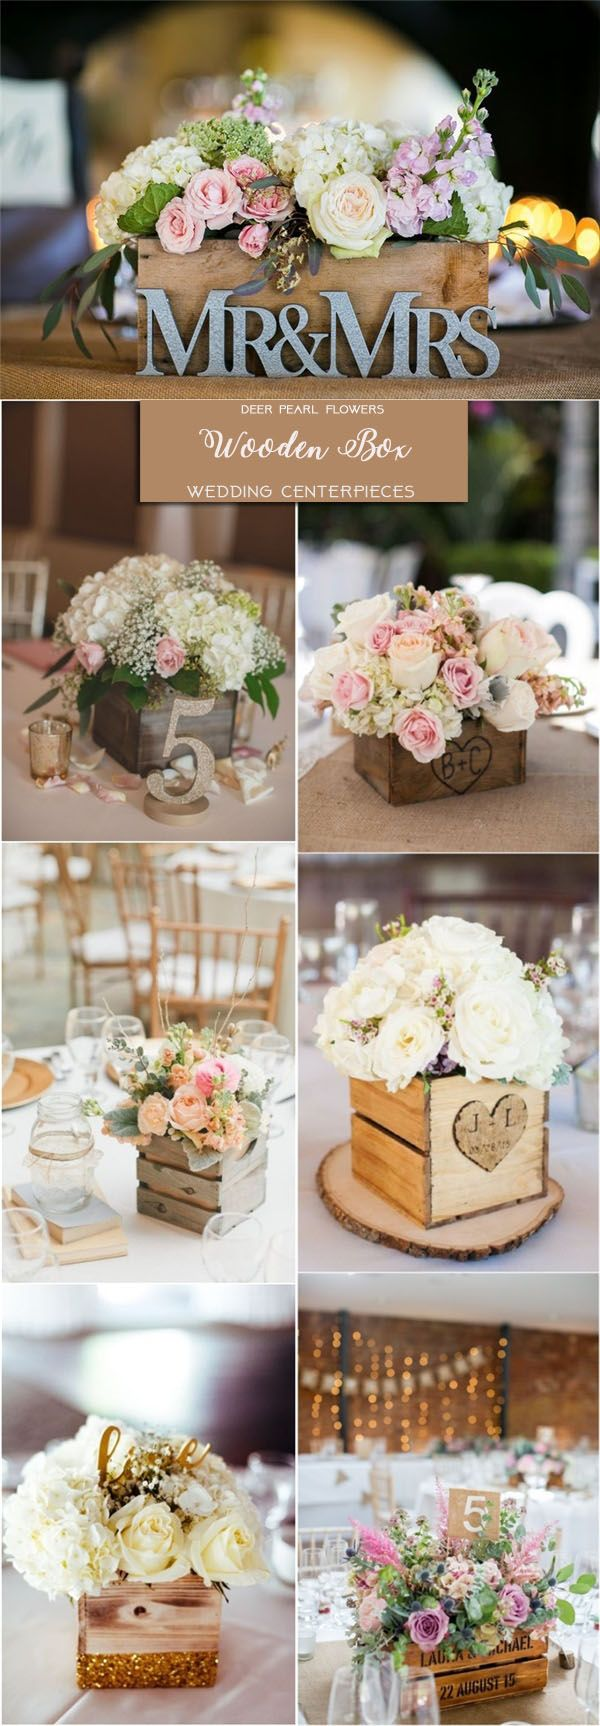 Best rustic wedding centerpieces ideas on pinterest